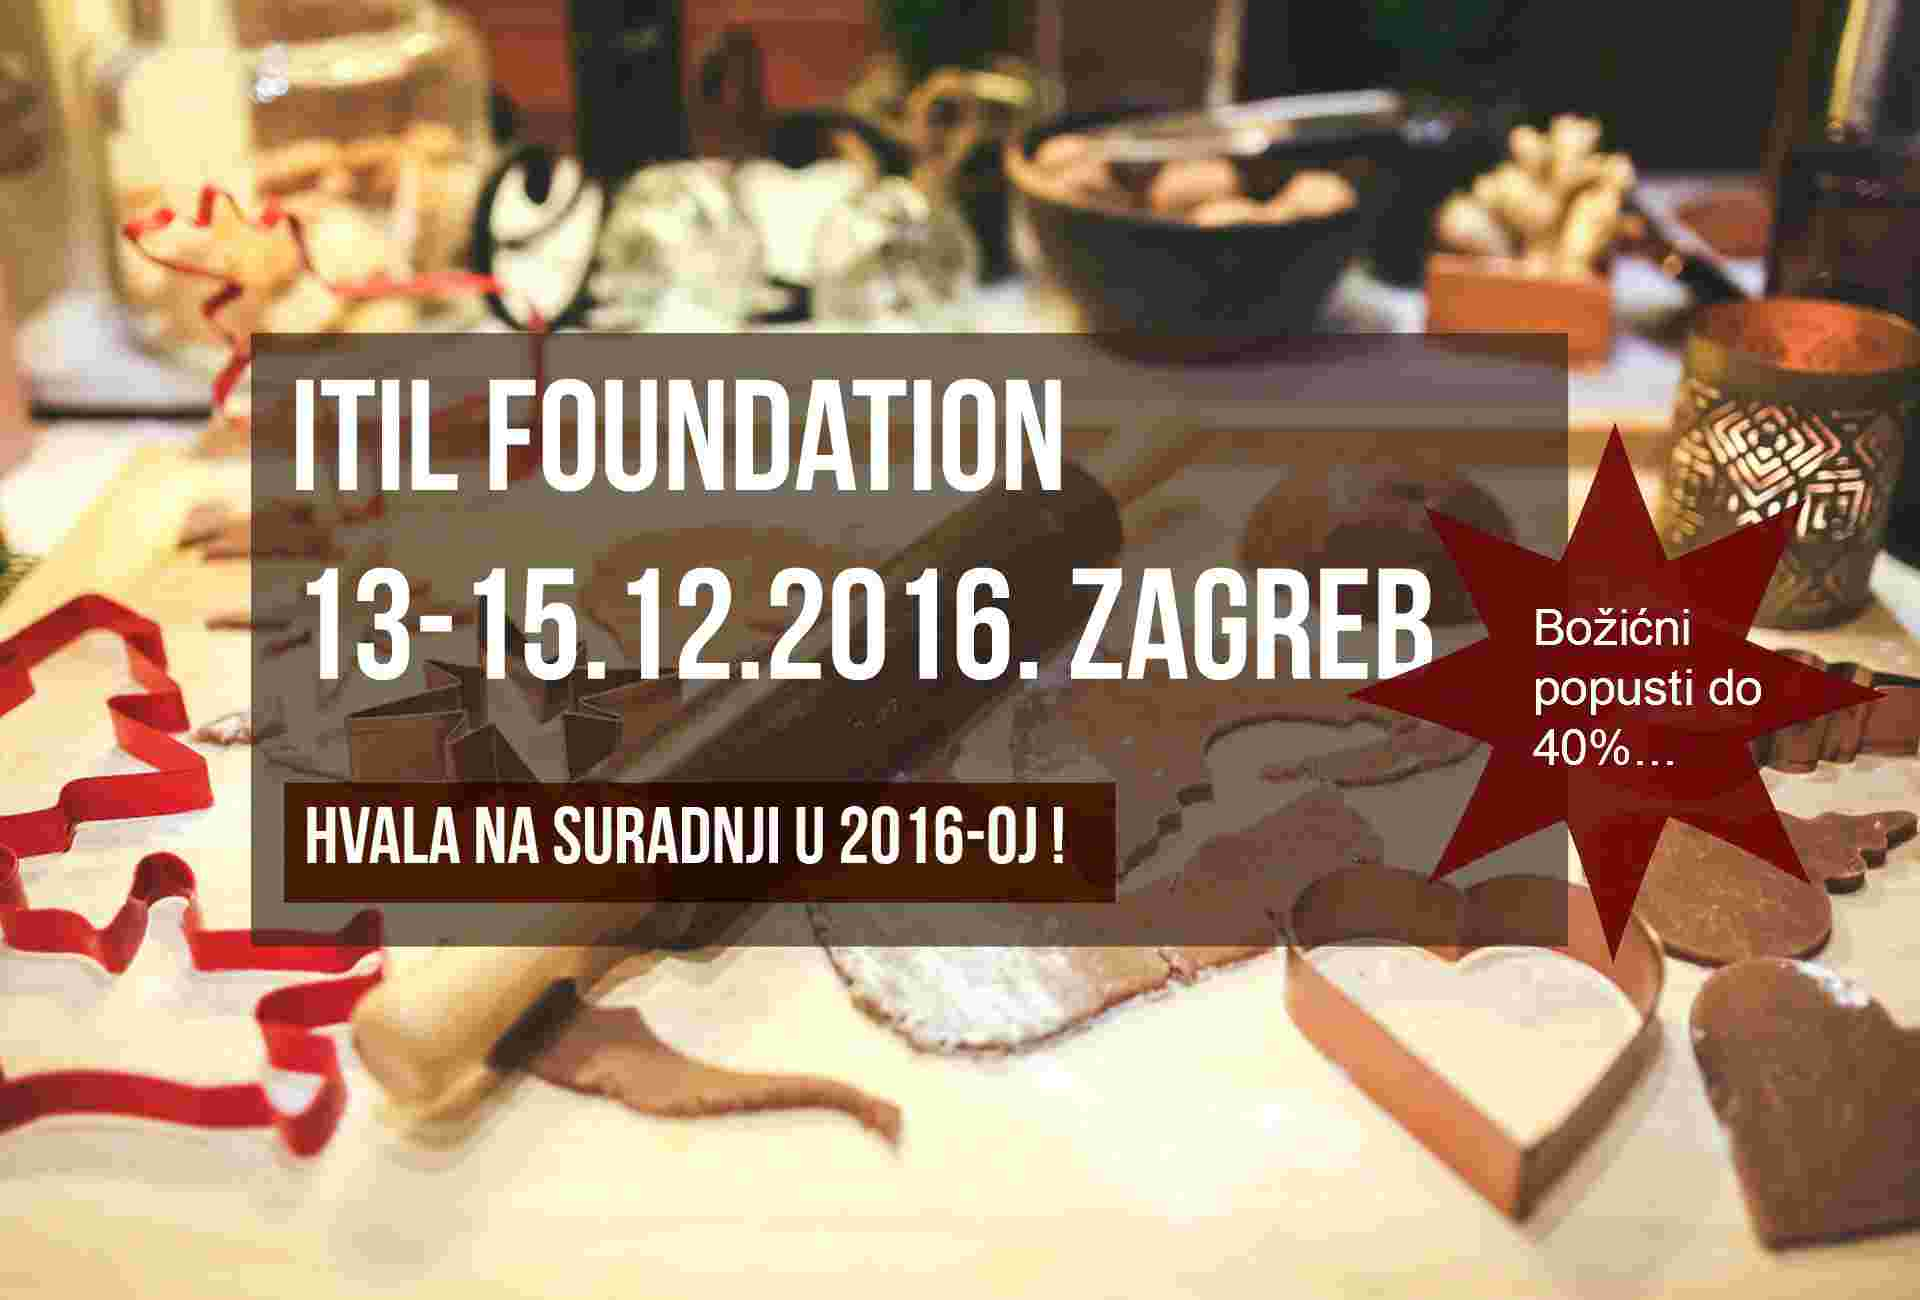 ITIL Foundation 13-15.12.2016 Zagreb